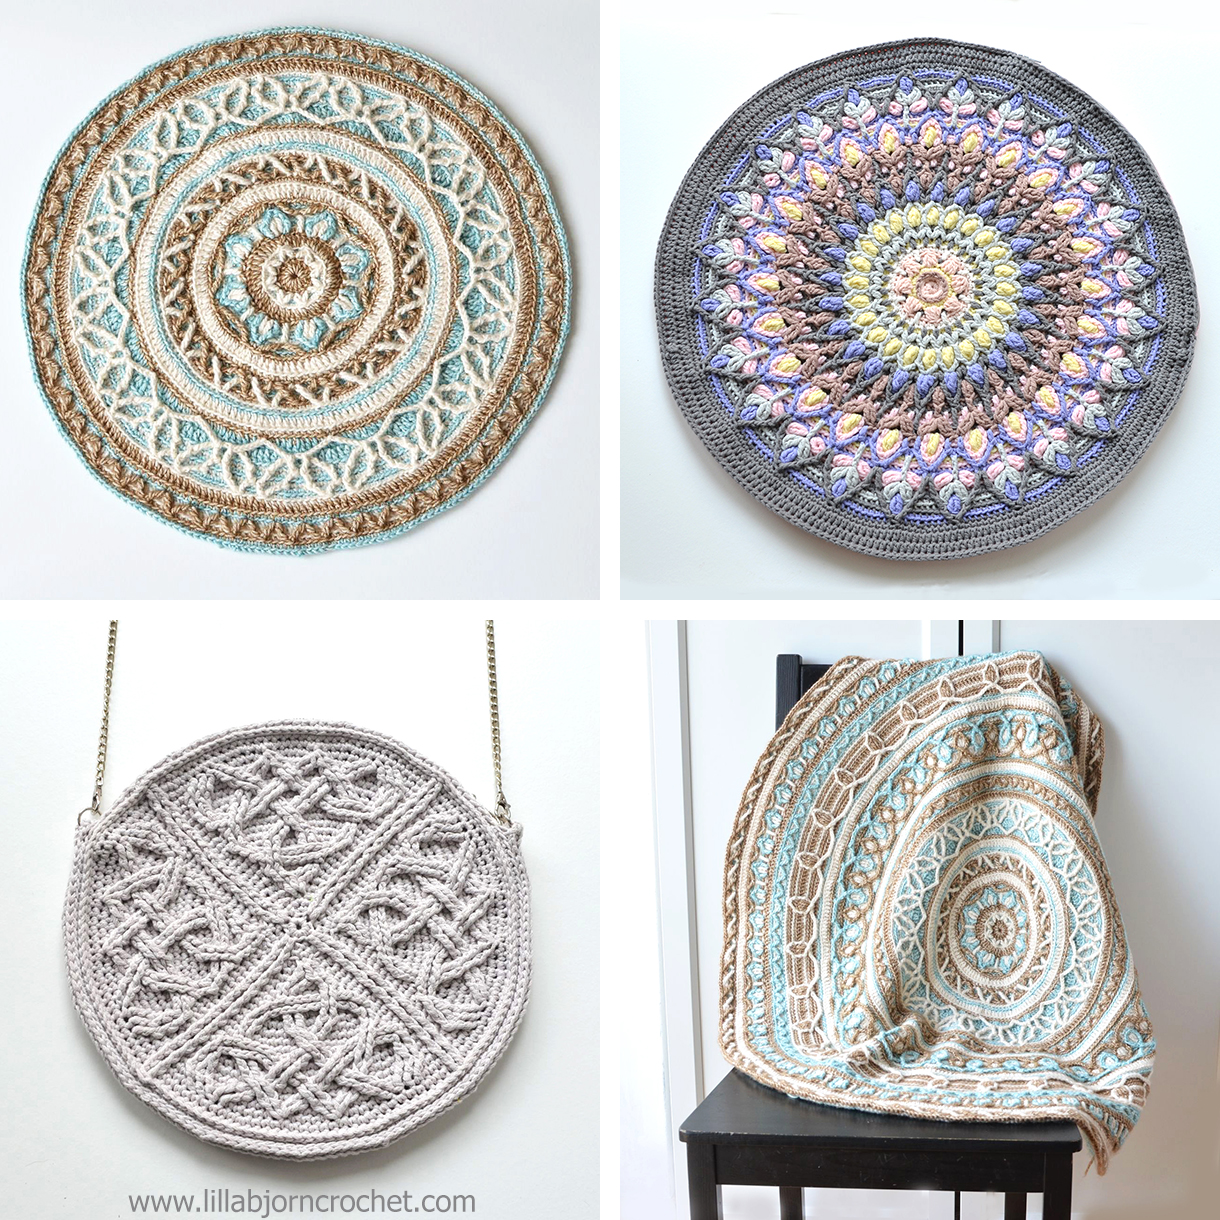 Overlay crochet mandala patterns by Lilla Bjorn